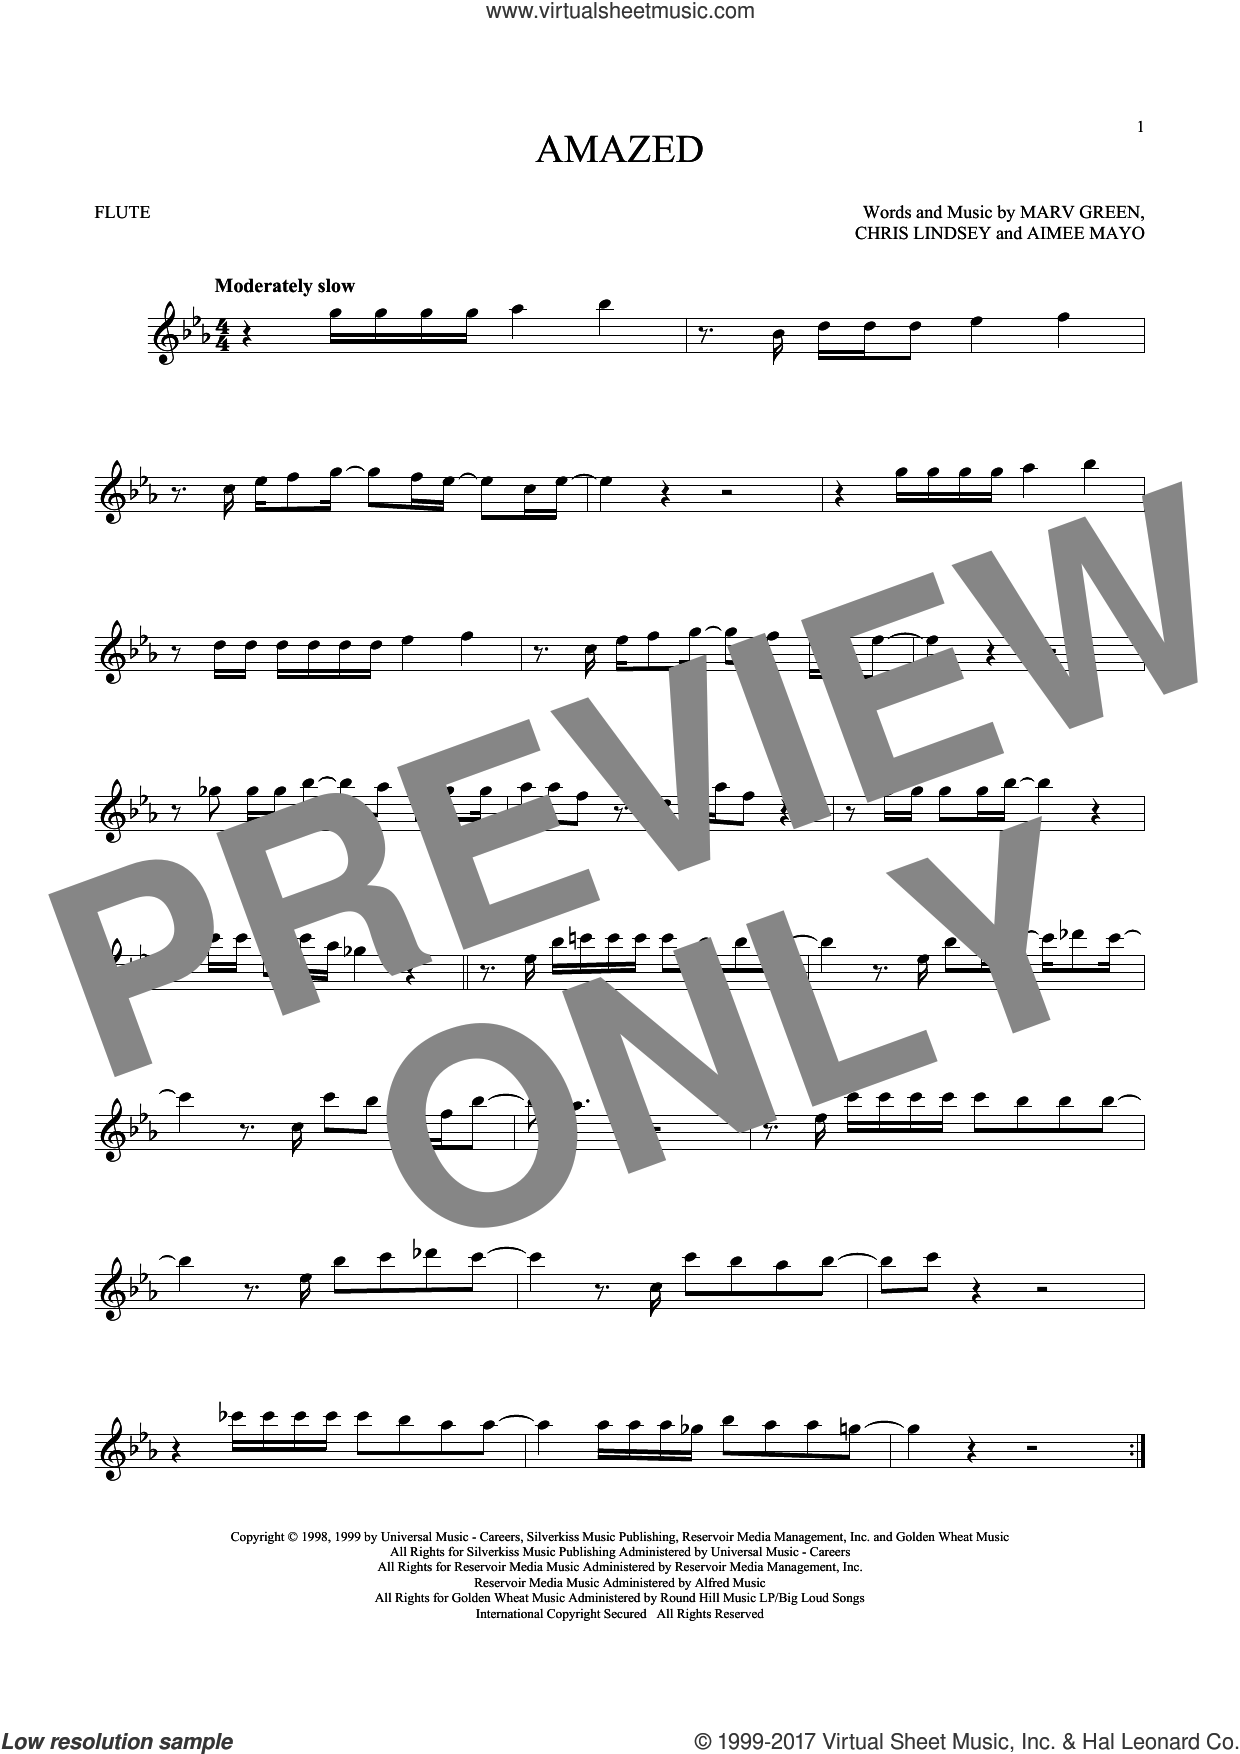 Amazed sheet music for flute solo by Lonestar, Aimee Mayo, Chris Lindsey and Marv Green, intermediate